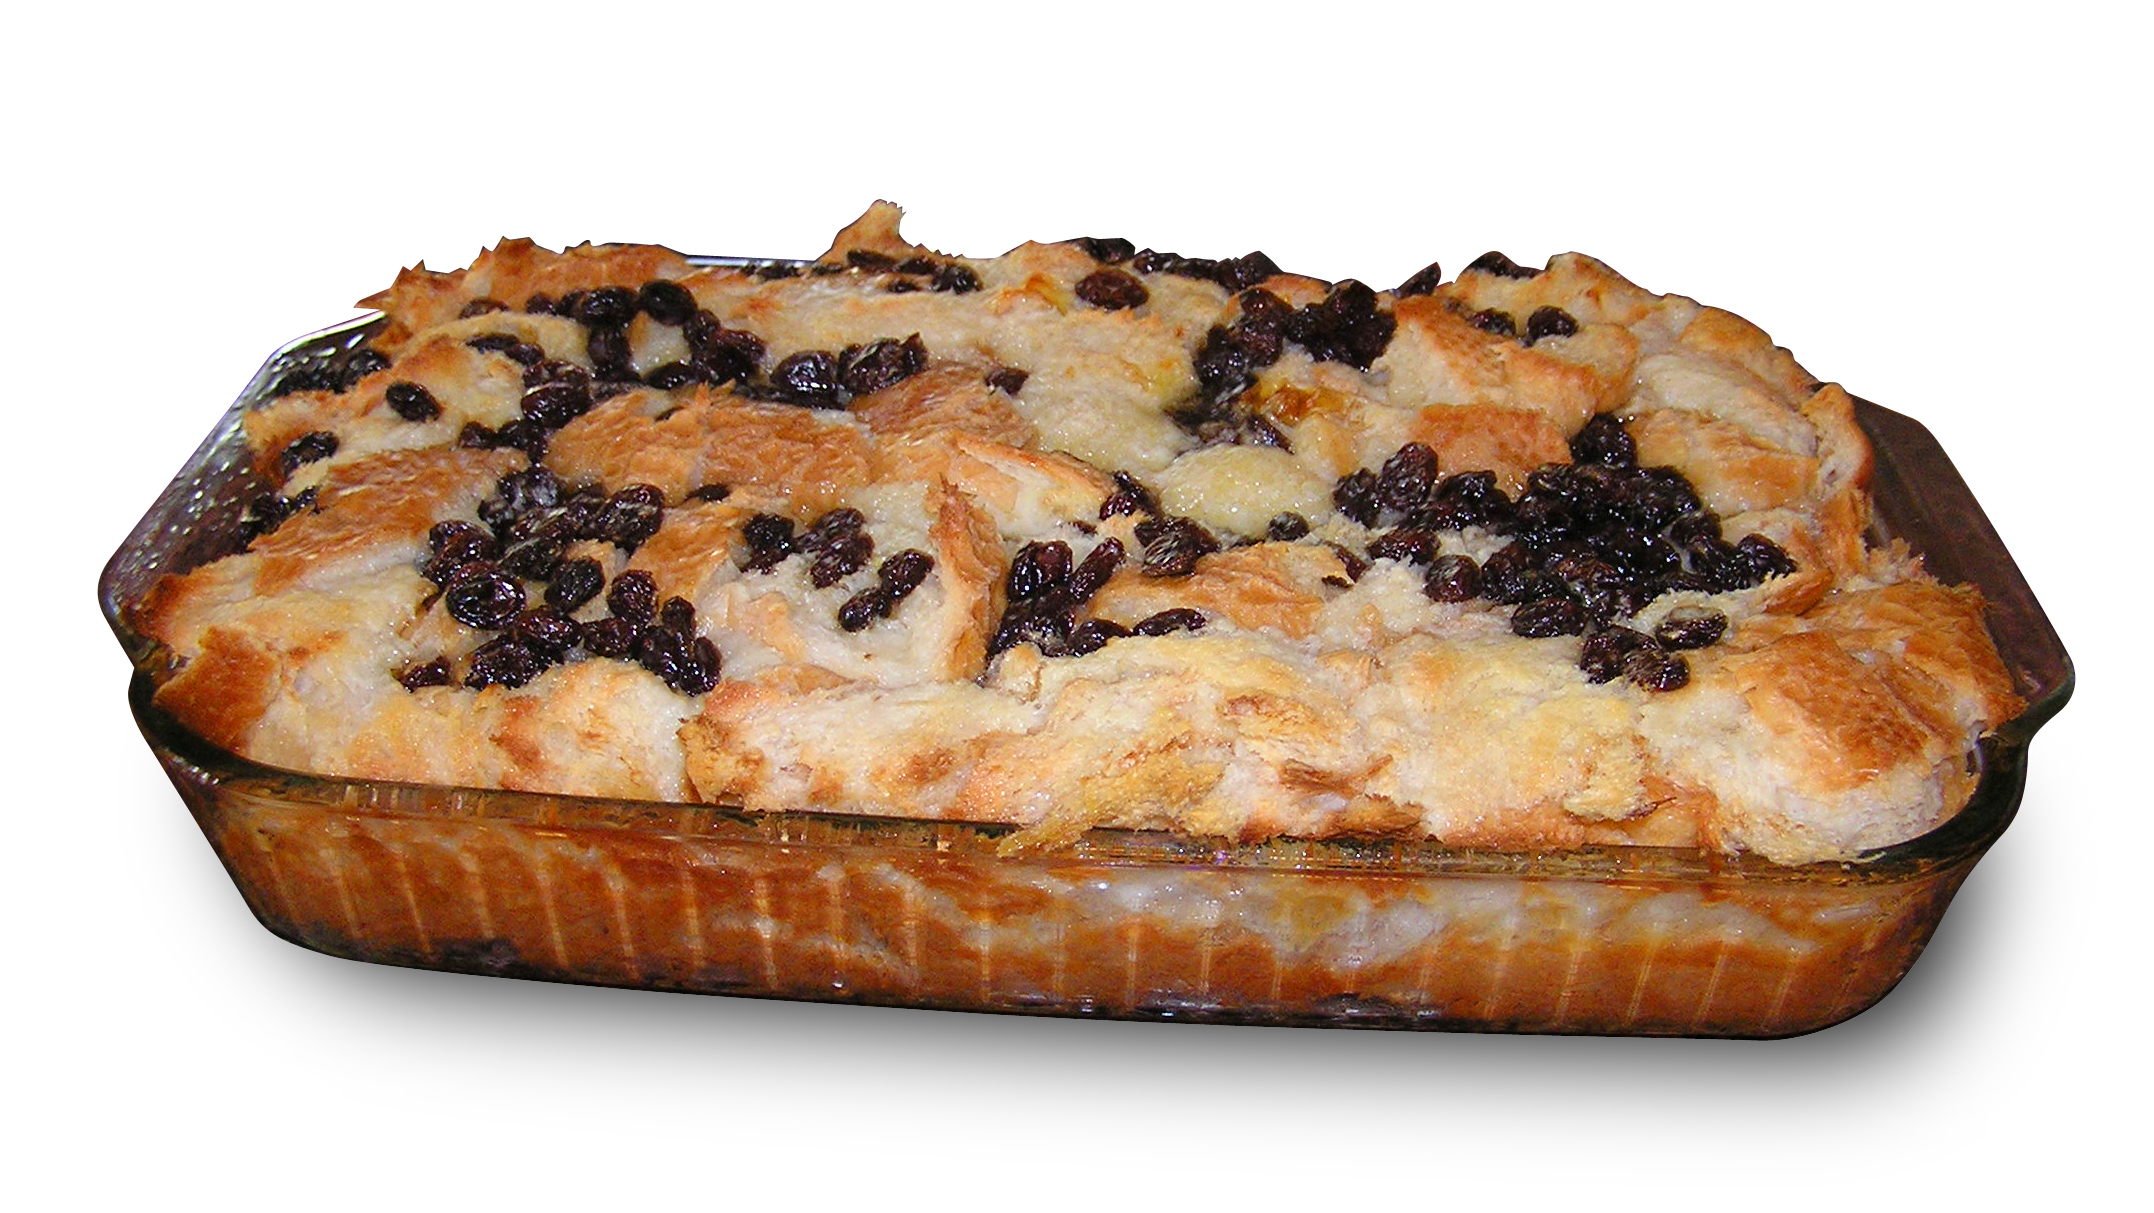 File:Bread pudding on white background.jpg - Wikimedia Commons